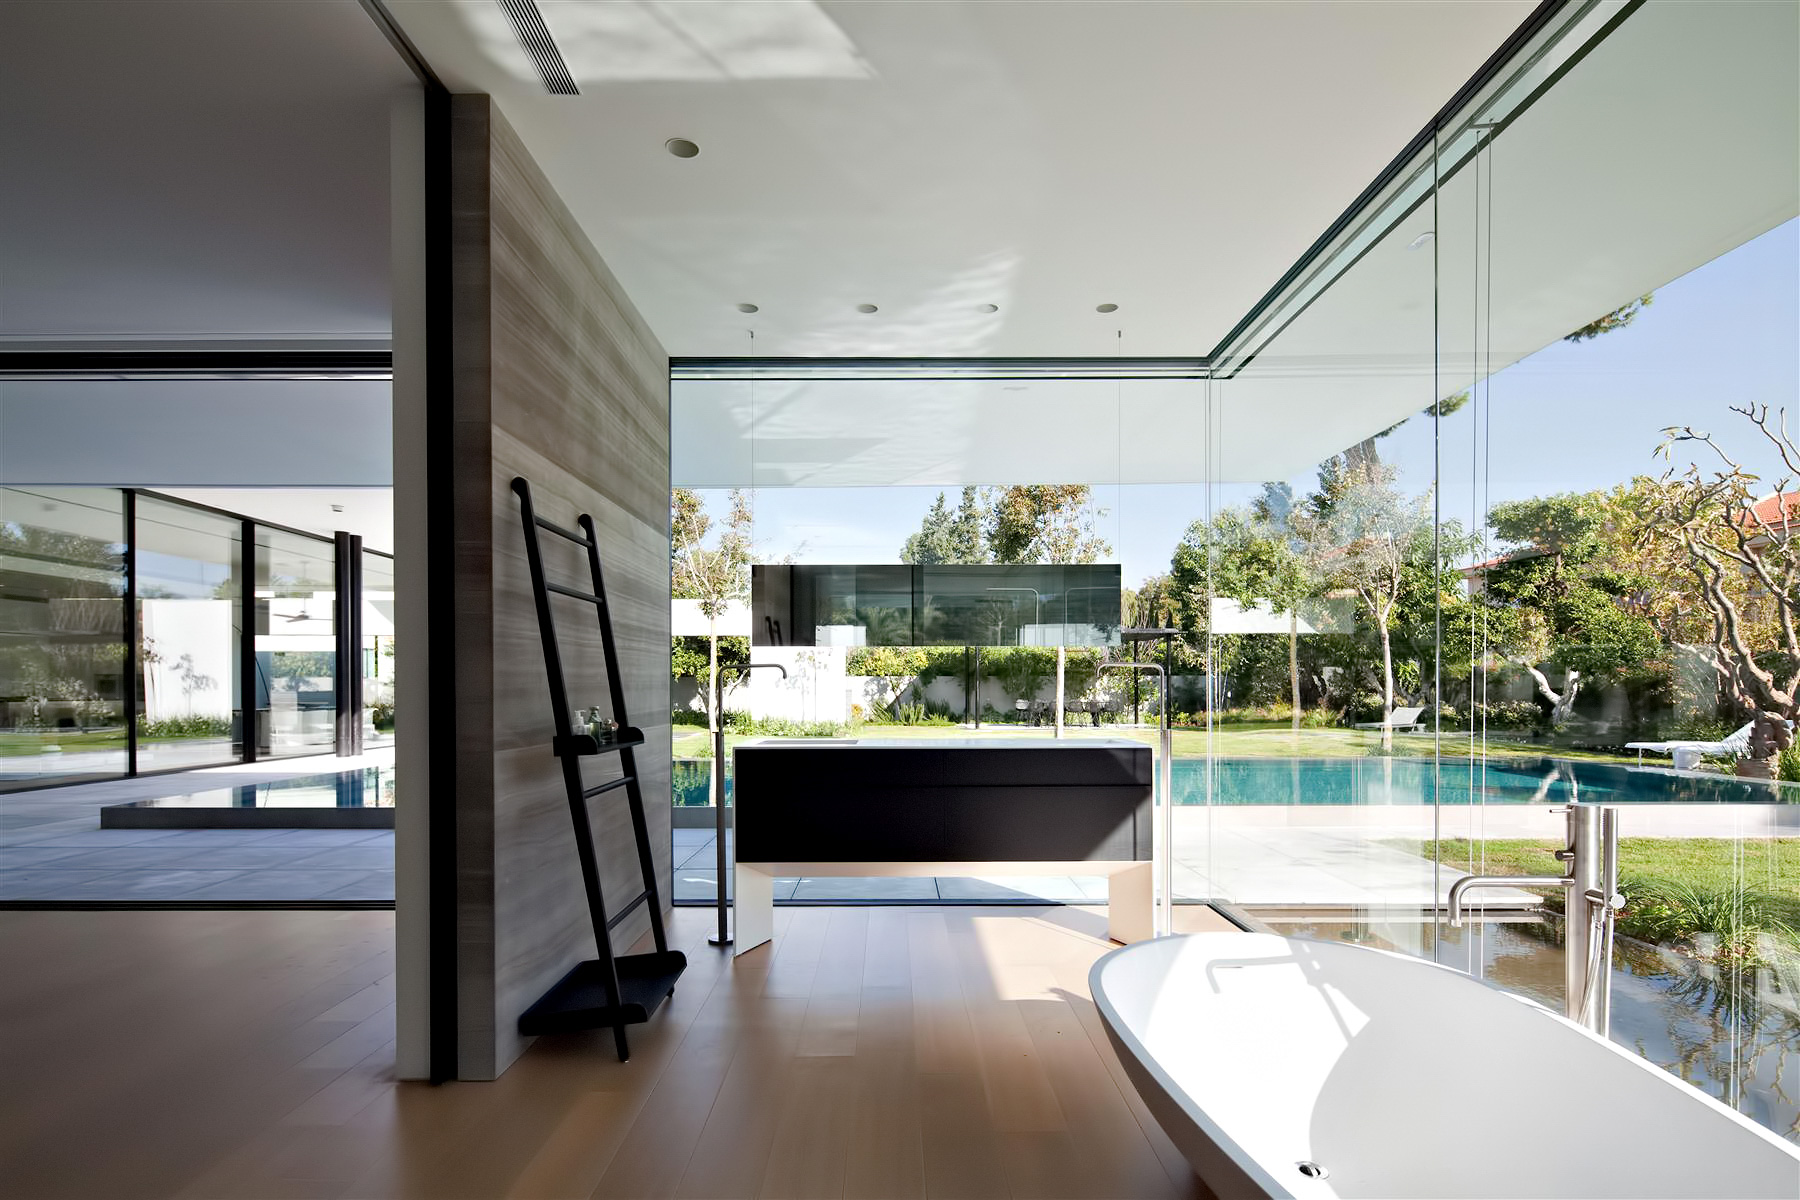 Float House Luxury Villa - Jaffa, Tel Aviv, Israel